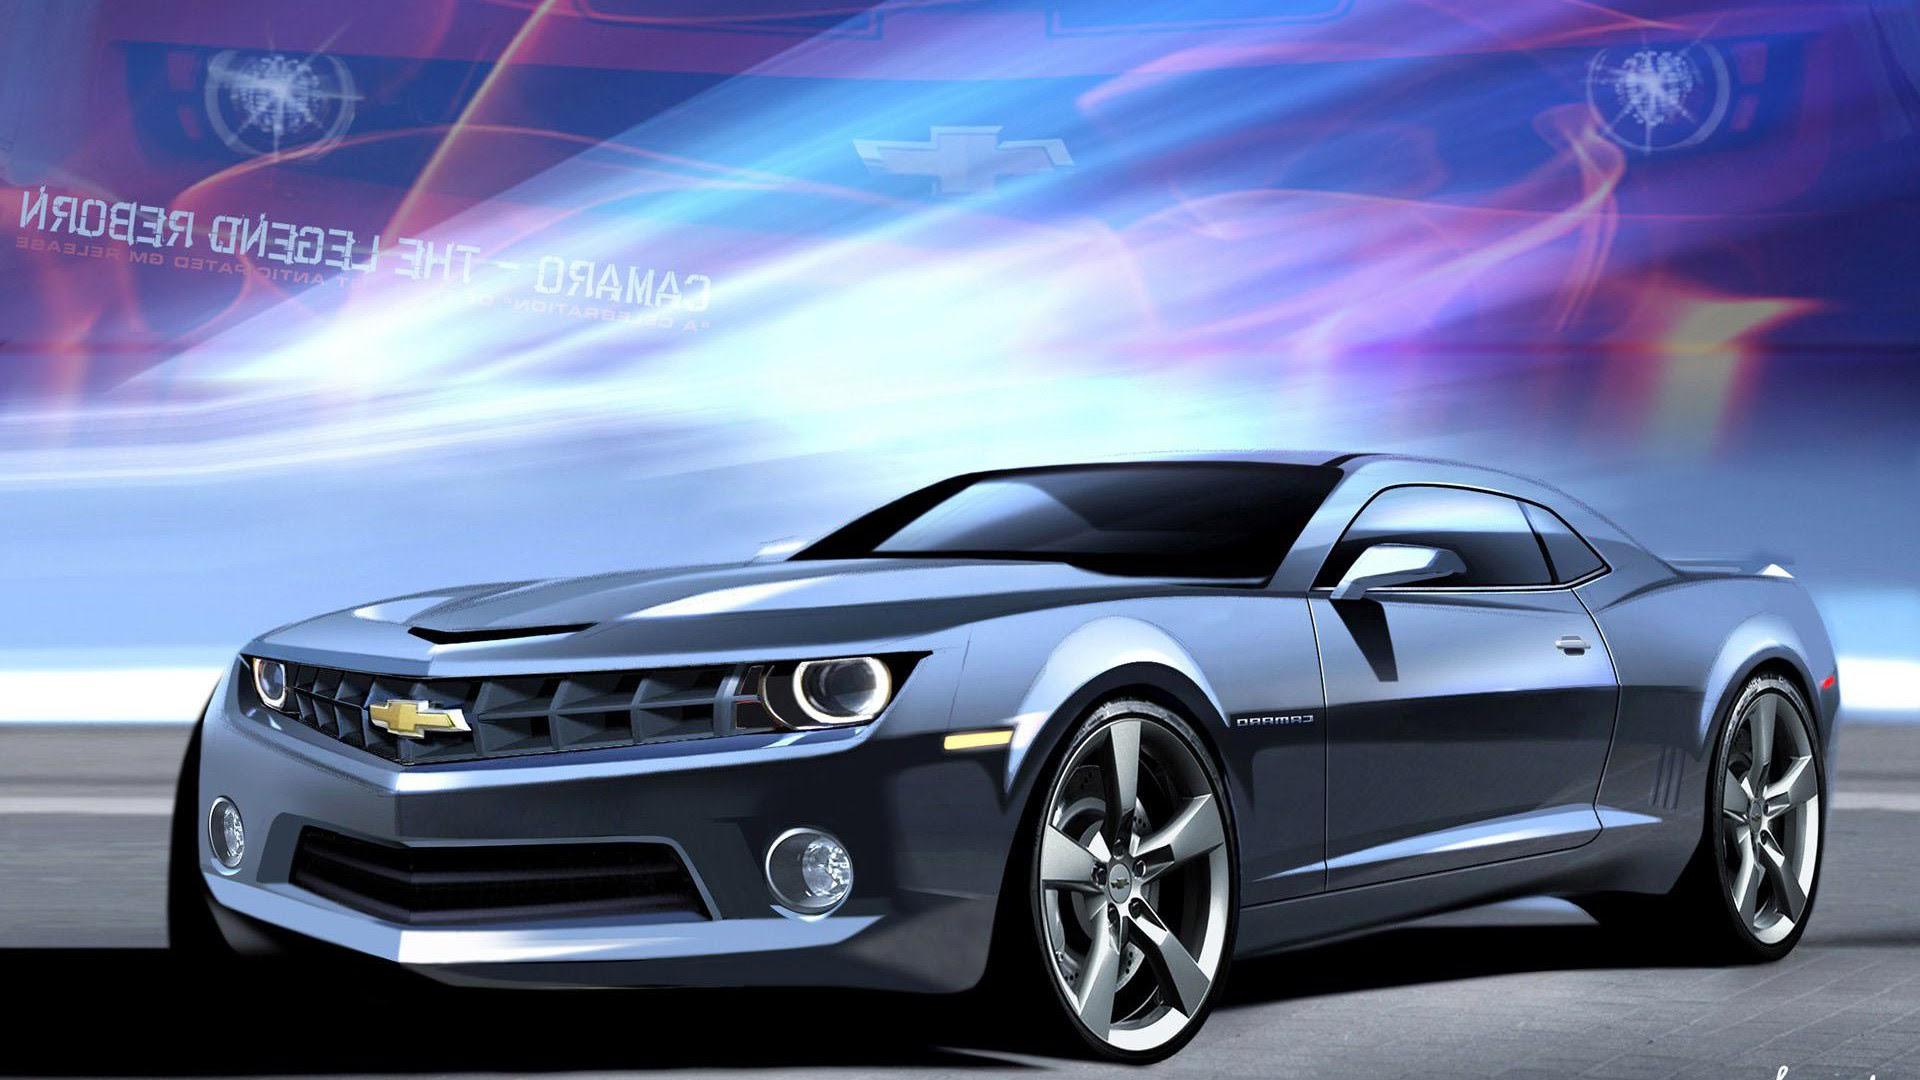 Chevy Camaro HD Wallpapers  Movie HD Wallpapers